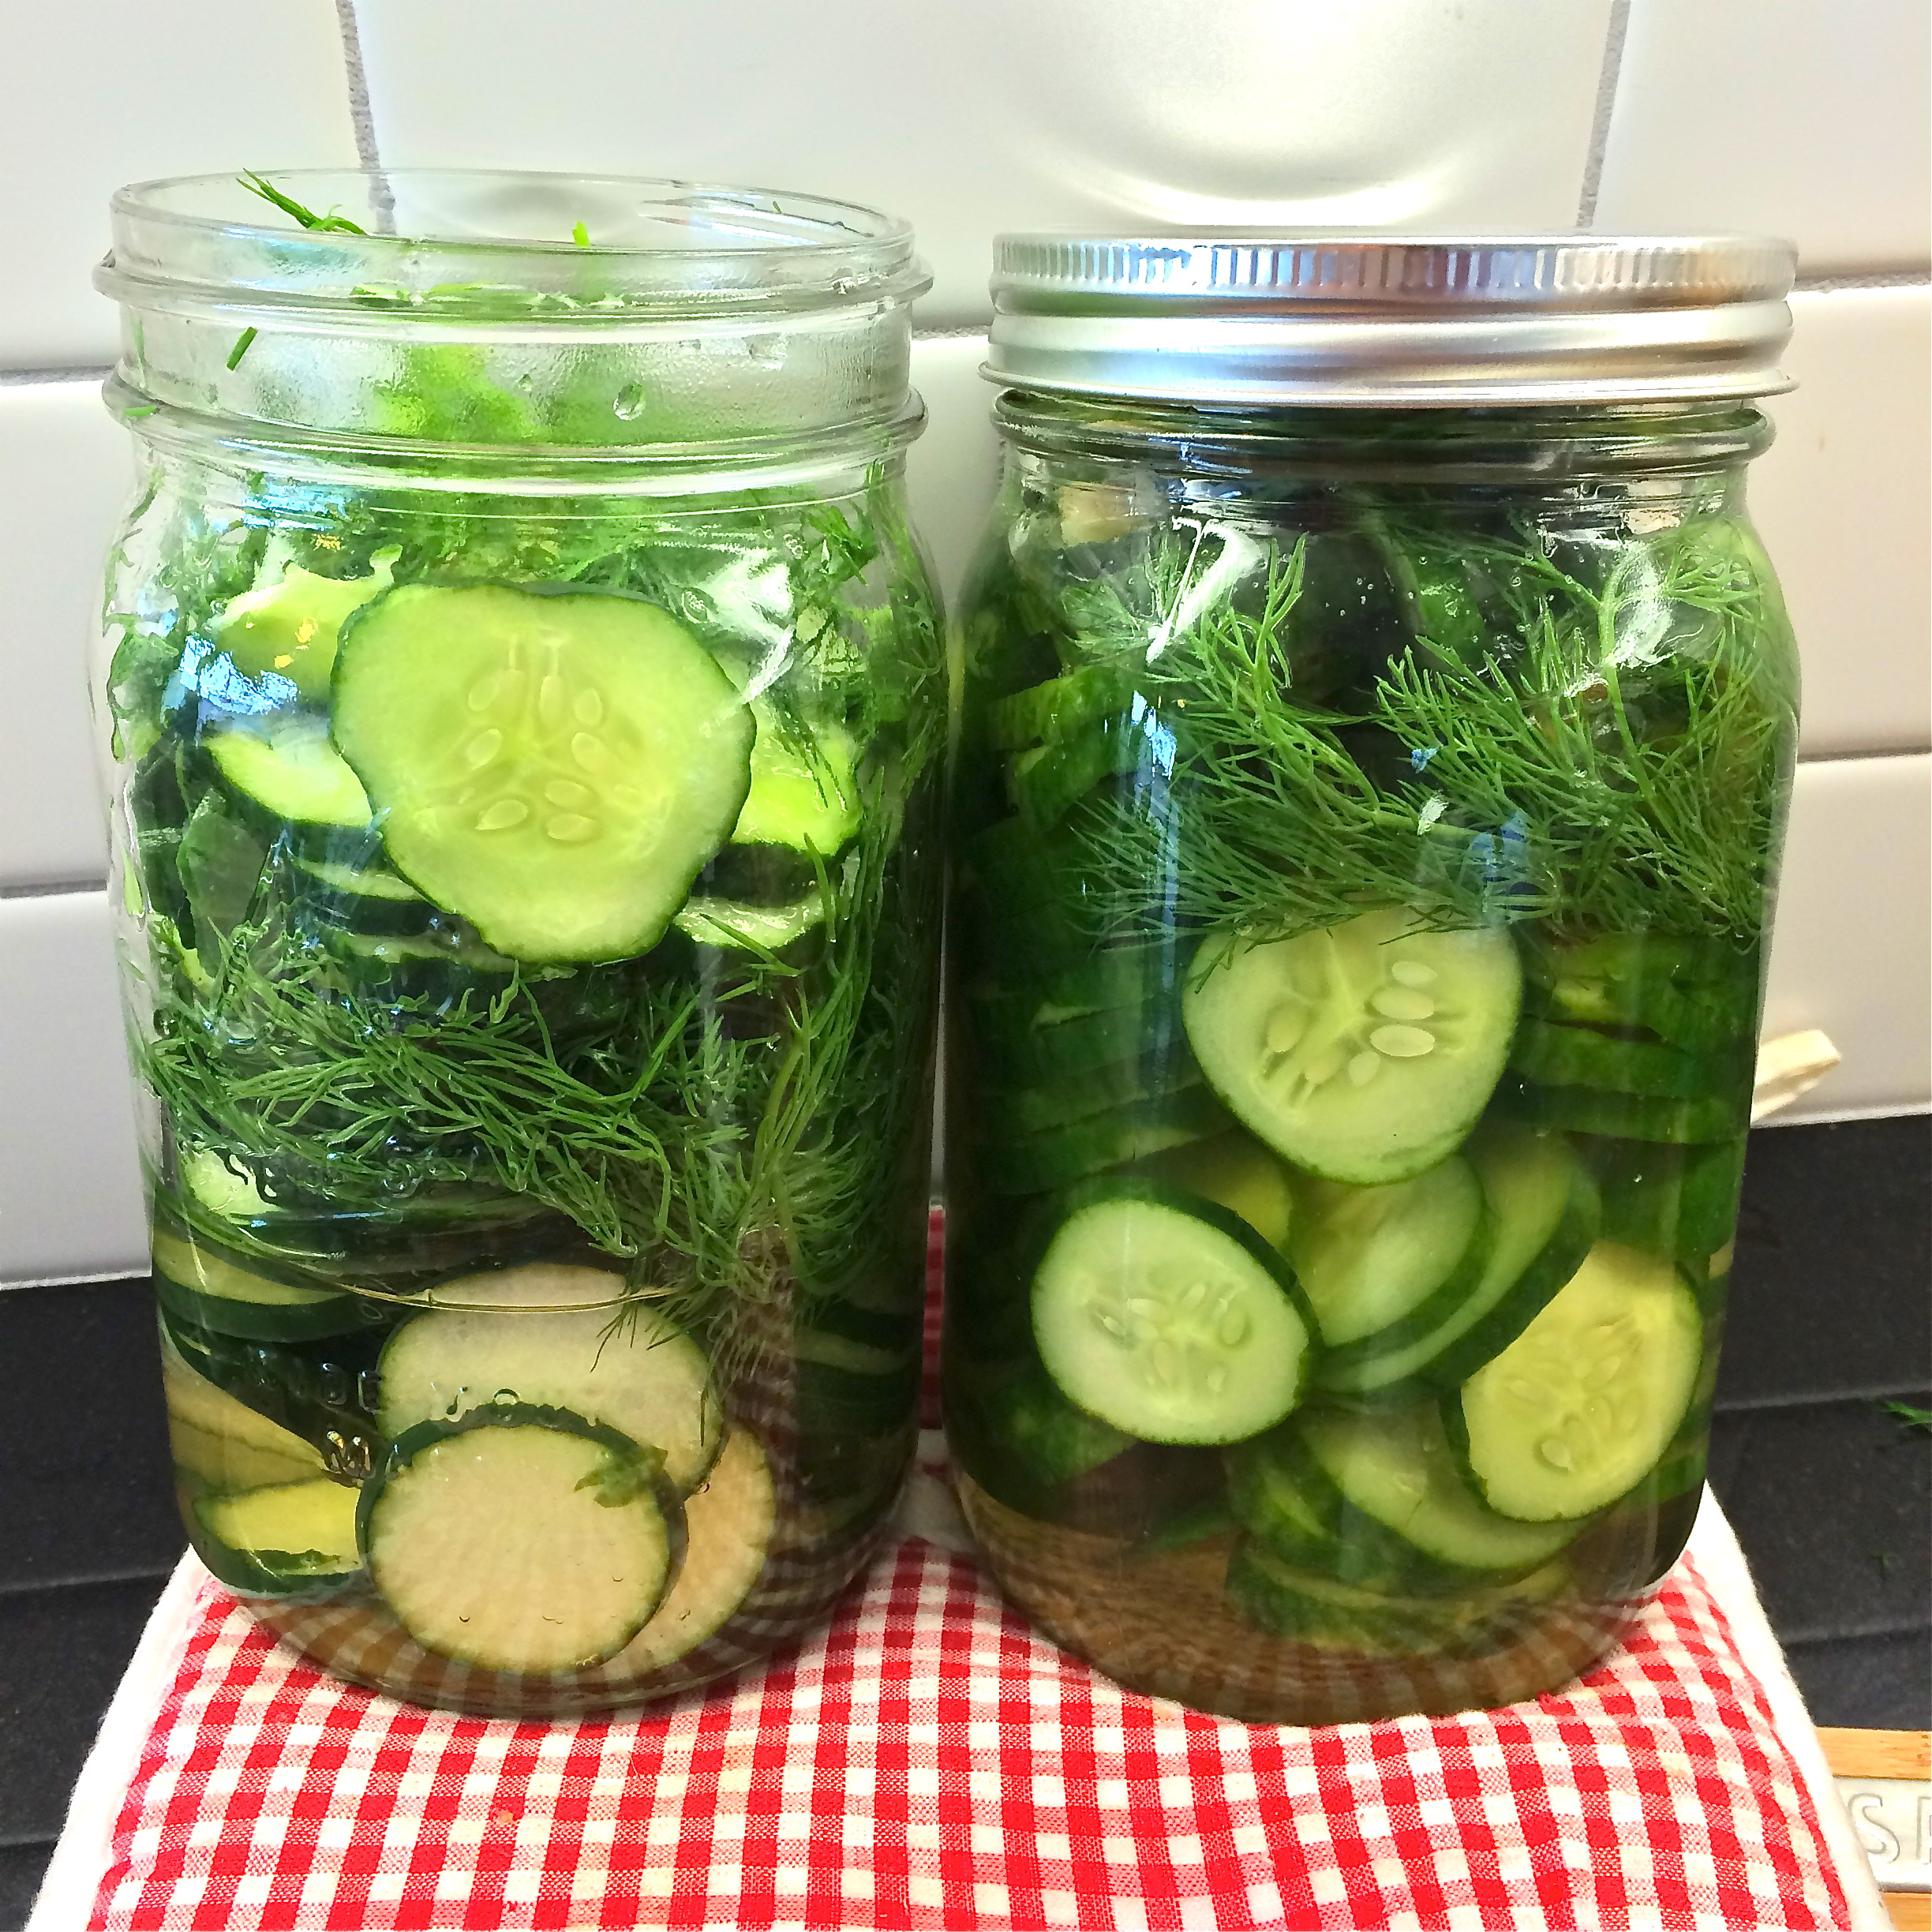 Fridge_Pickles_900174322.jpg